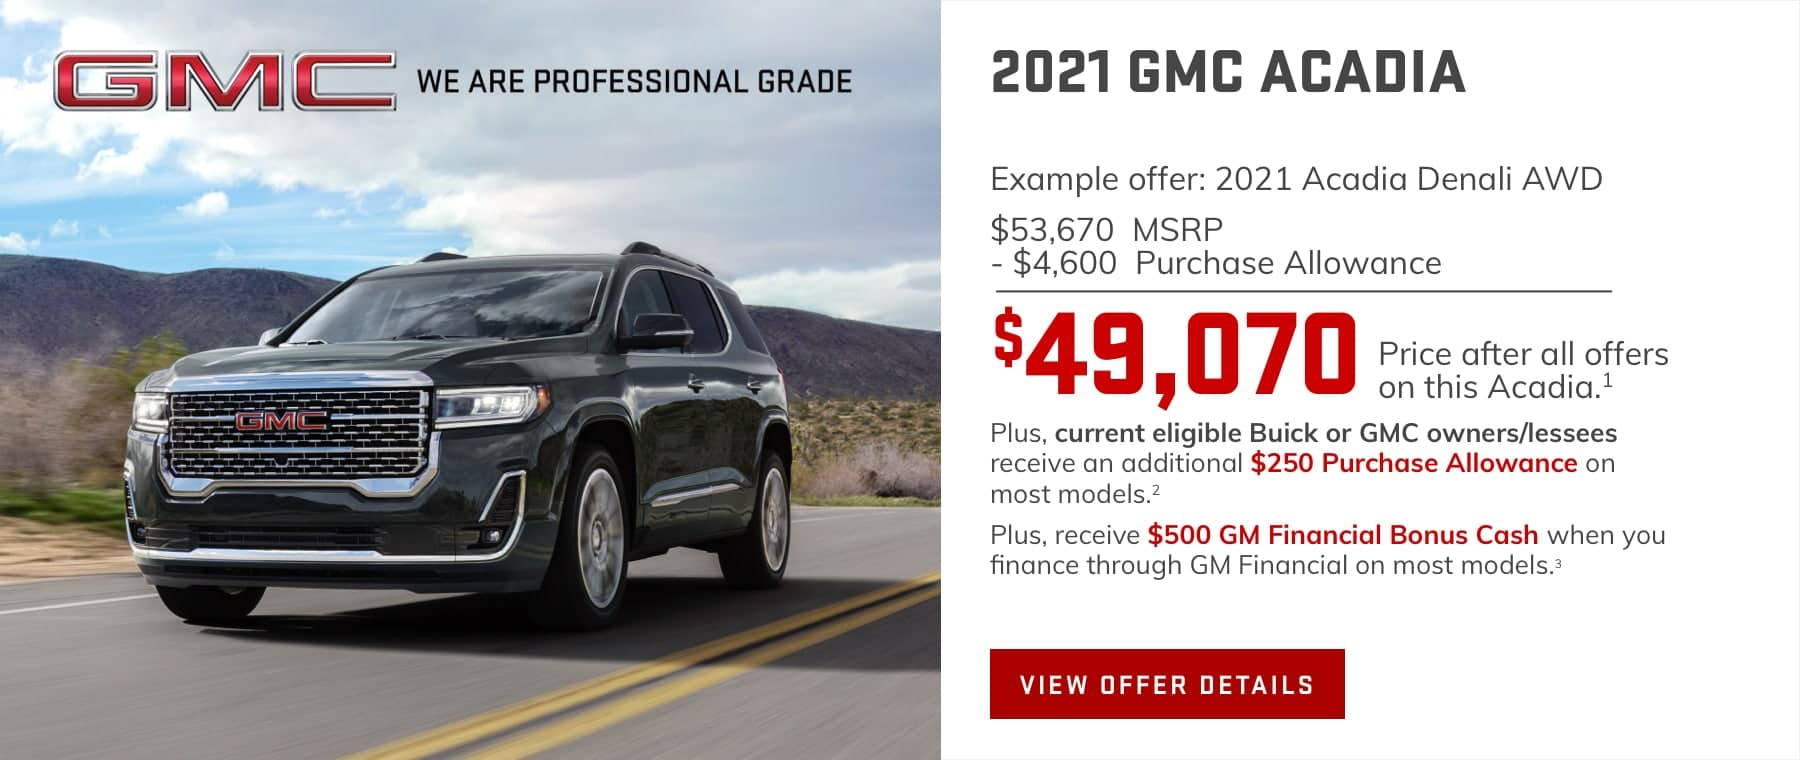 Example offer: 2021 Acadia Denali AWD $53,670 MSRP $4,600 Purchase Allowance $49,070 Price after all offers on this Acadia.1 Plus, current eligible Buick or GMC owners/lessees receive an additional $250 Purchase Allowance on most models.2 Plus, receive $500 GM Financial Bonus Cash when you finance through GM Financial on most models.3